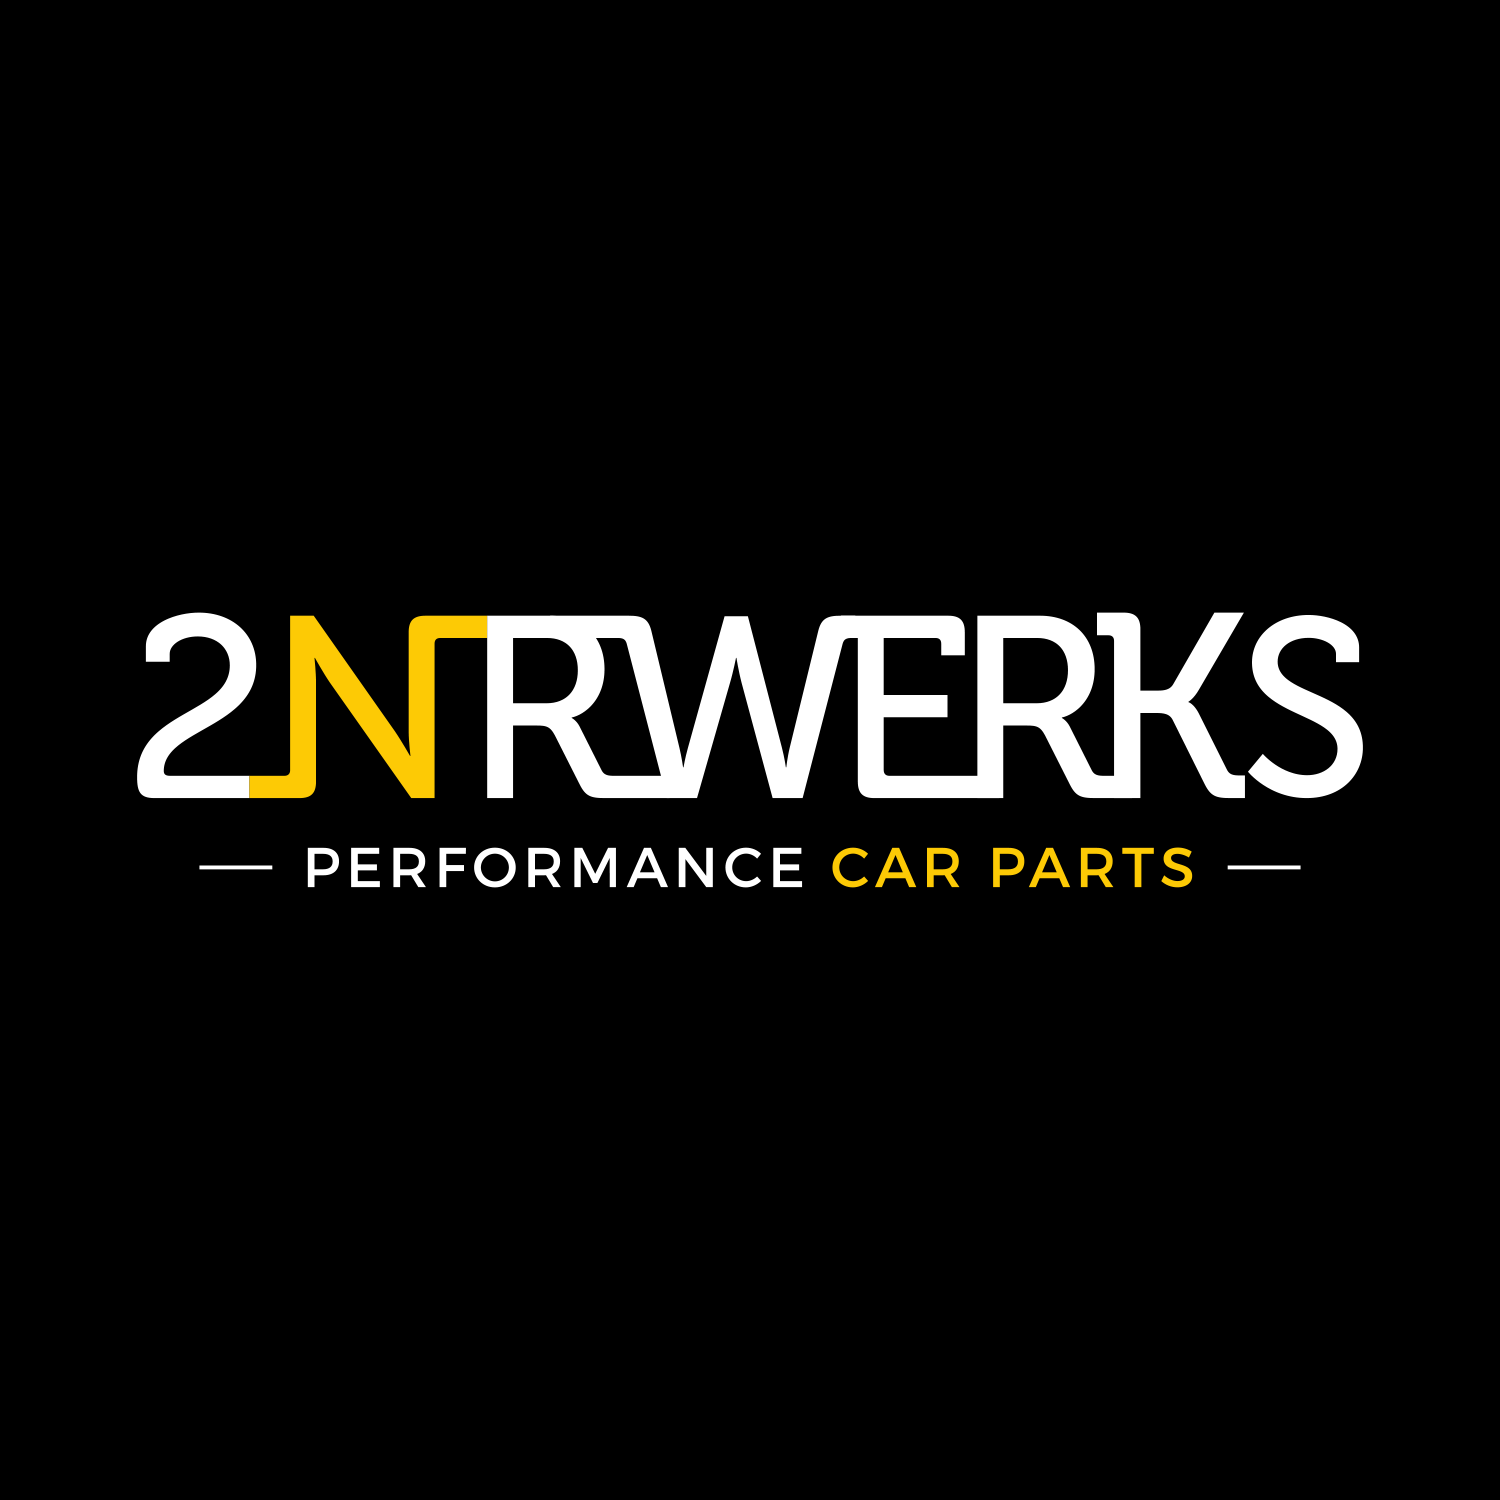 2NRWerks Performance Car Parts